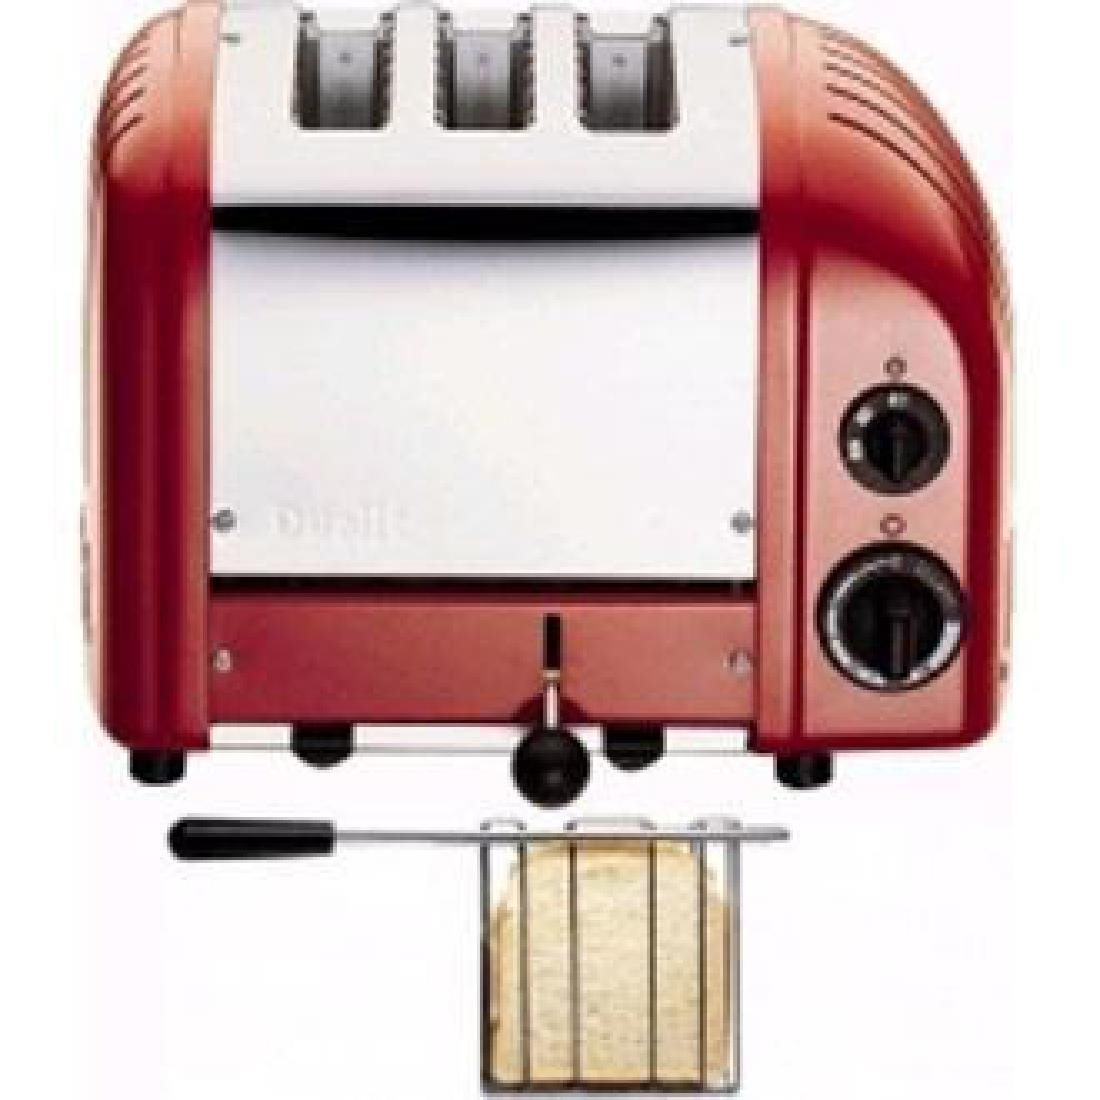 Image of Dualit 2 + 1 Combi Vario 3 Slice Toaster Red 31214